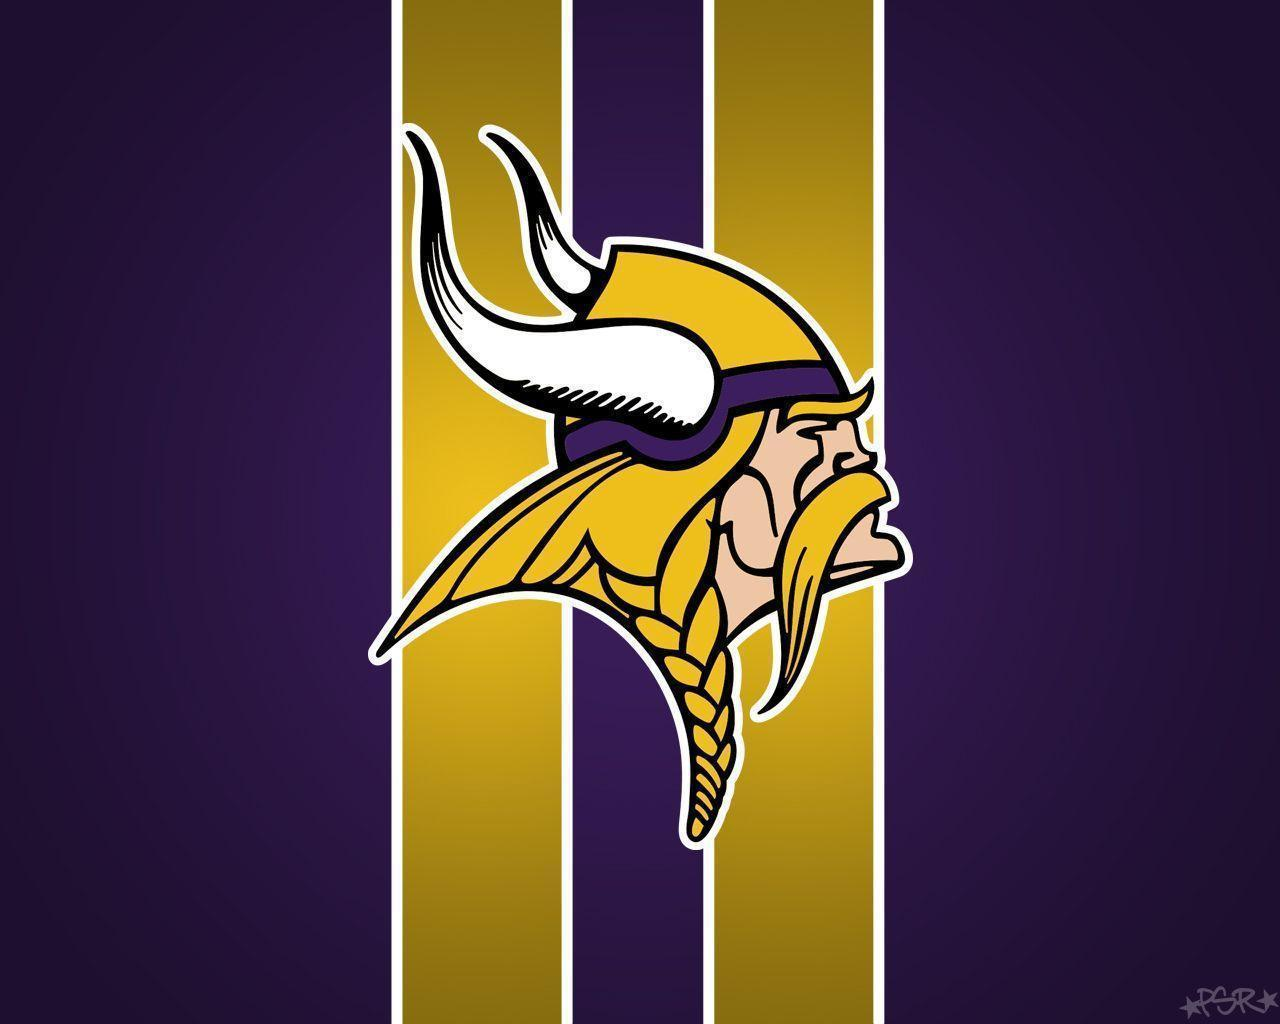 Minnesota Vikings Desktop Backgrounds Hd 25671 Images | wallgraf.